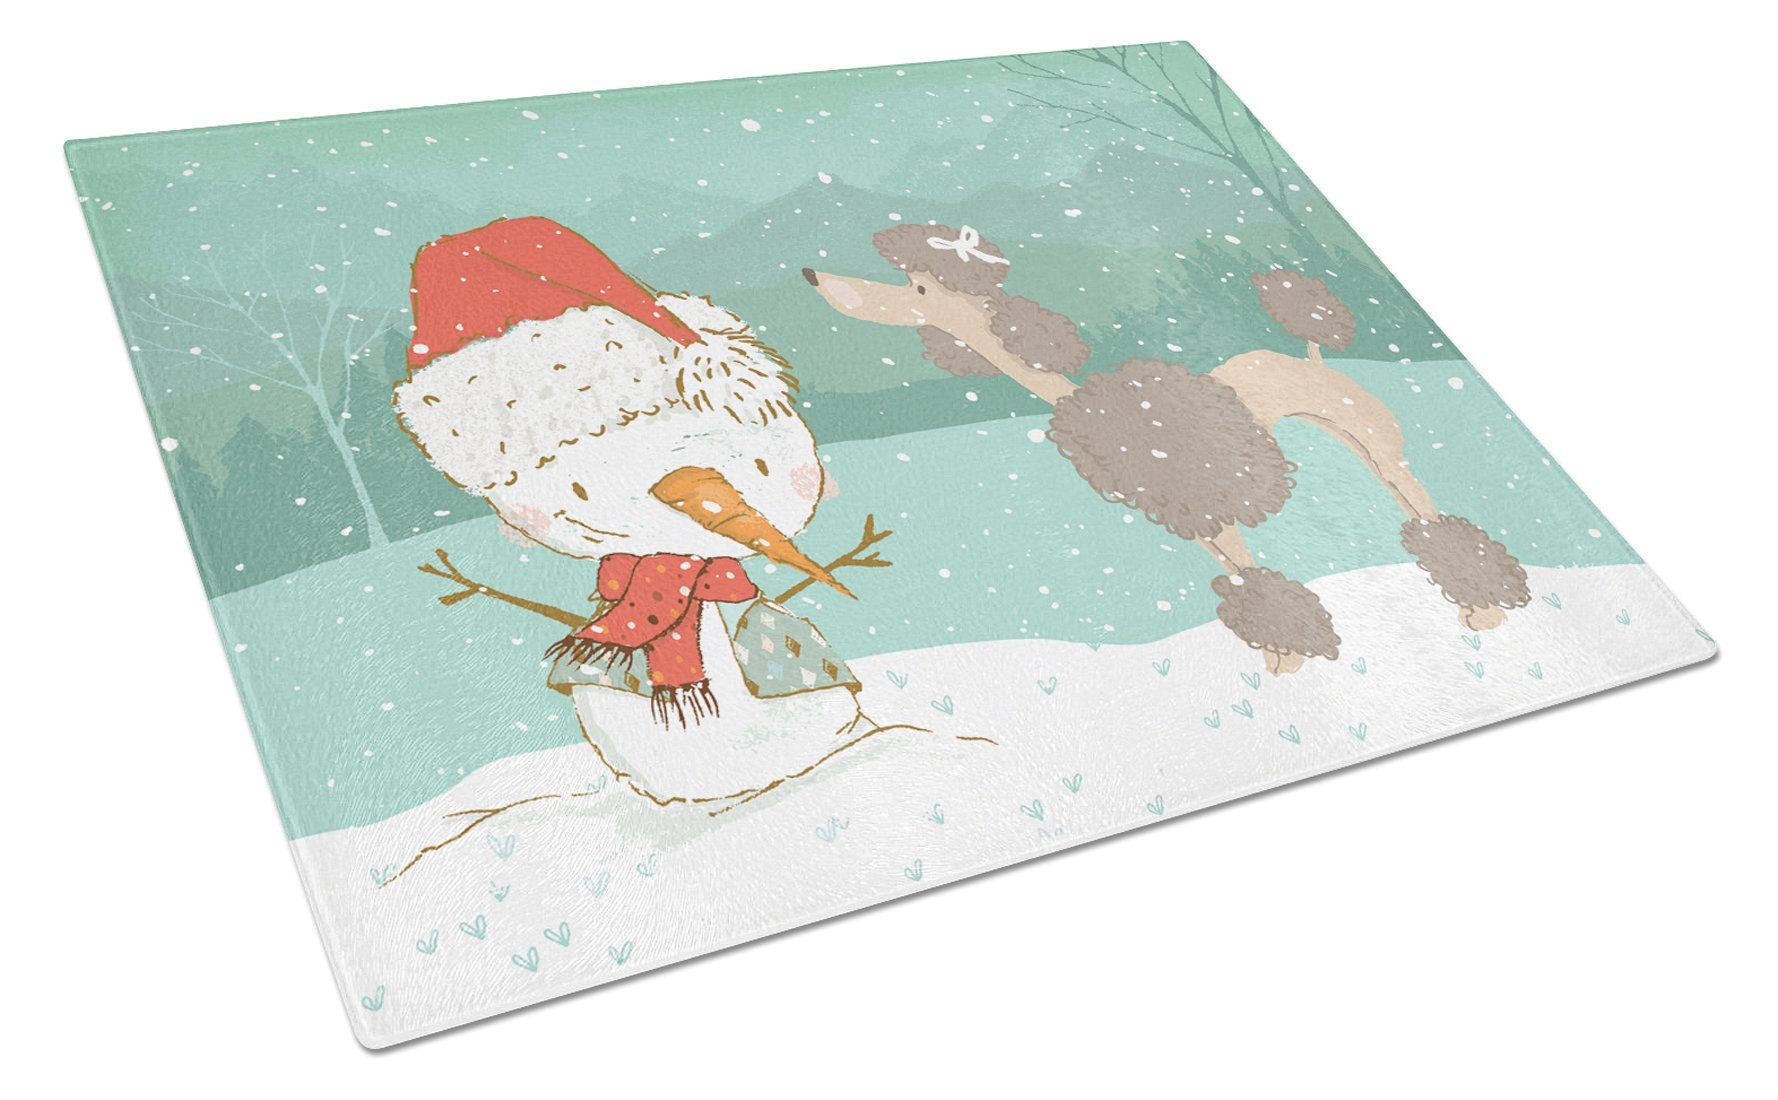 Chocolate Poodle Snowman Christmas Glass Cutting Board Large CK2065LCB by Caroline's Treasures